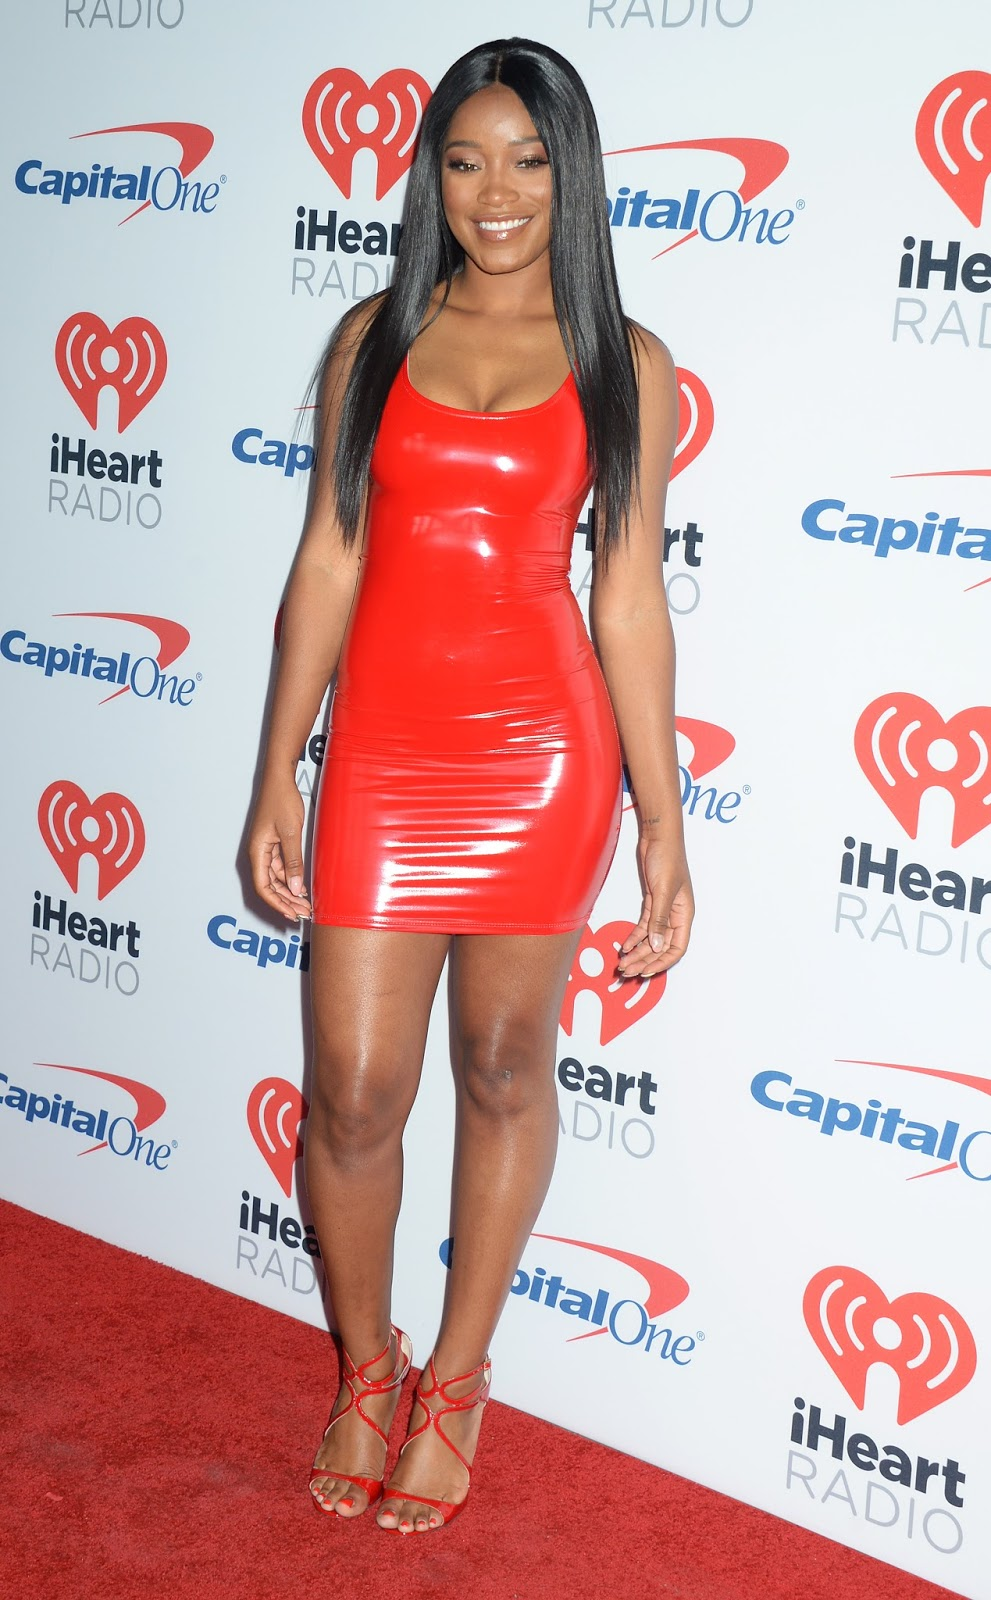 Holly Halston Latex with regard to lovely ladies in leather: keke palmer in a latex mini-dress